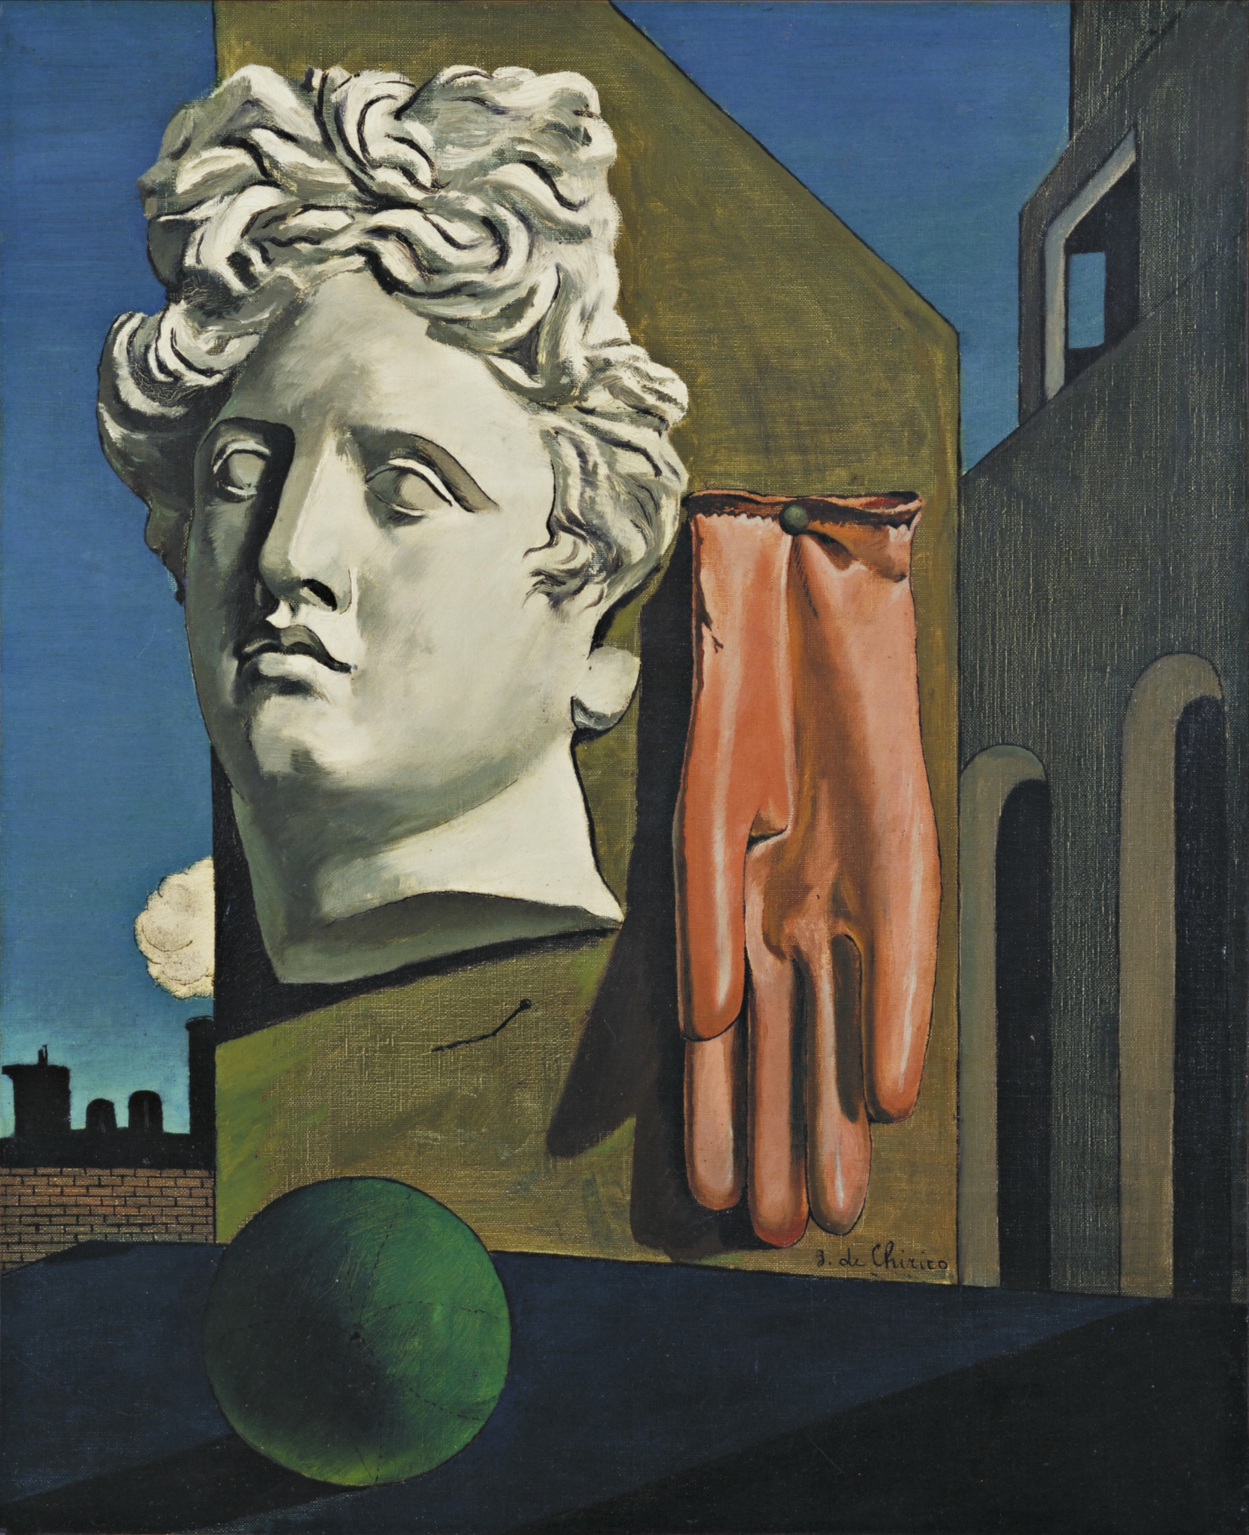 De Chirico's Song of Love, 1914